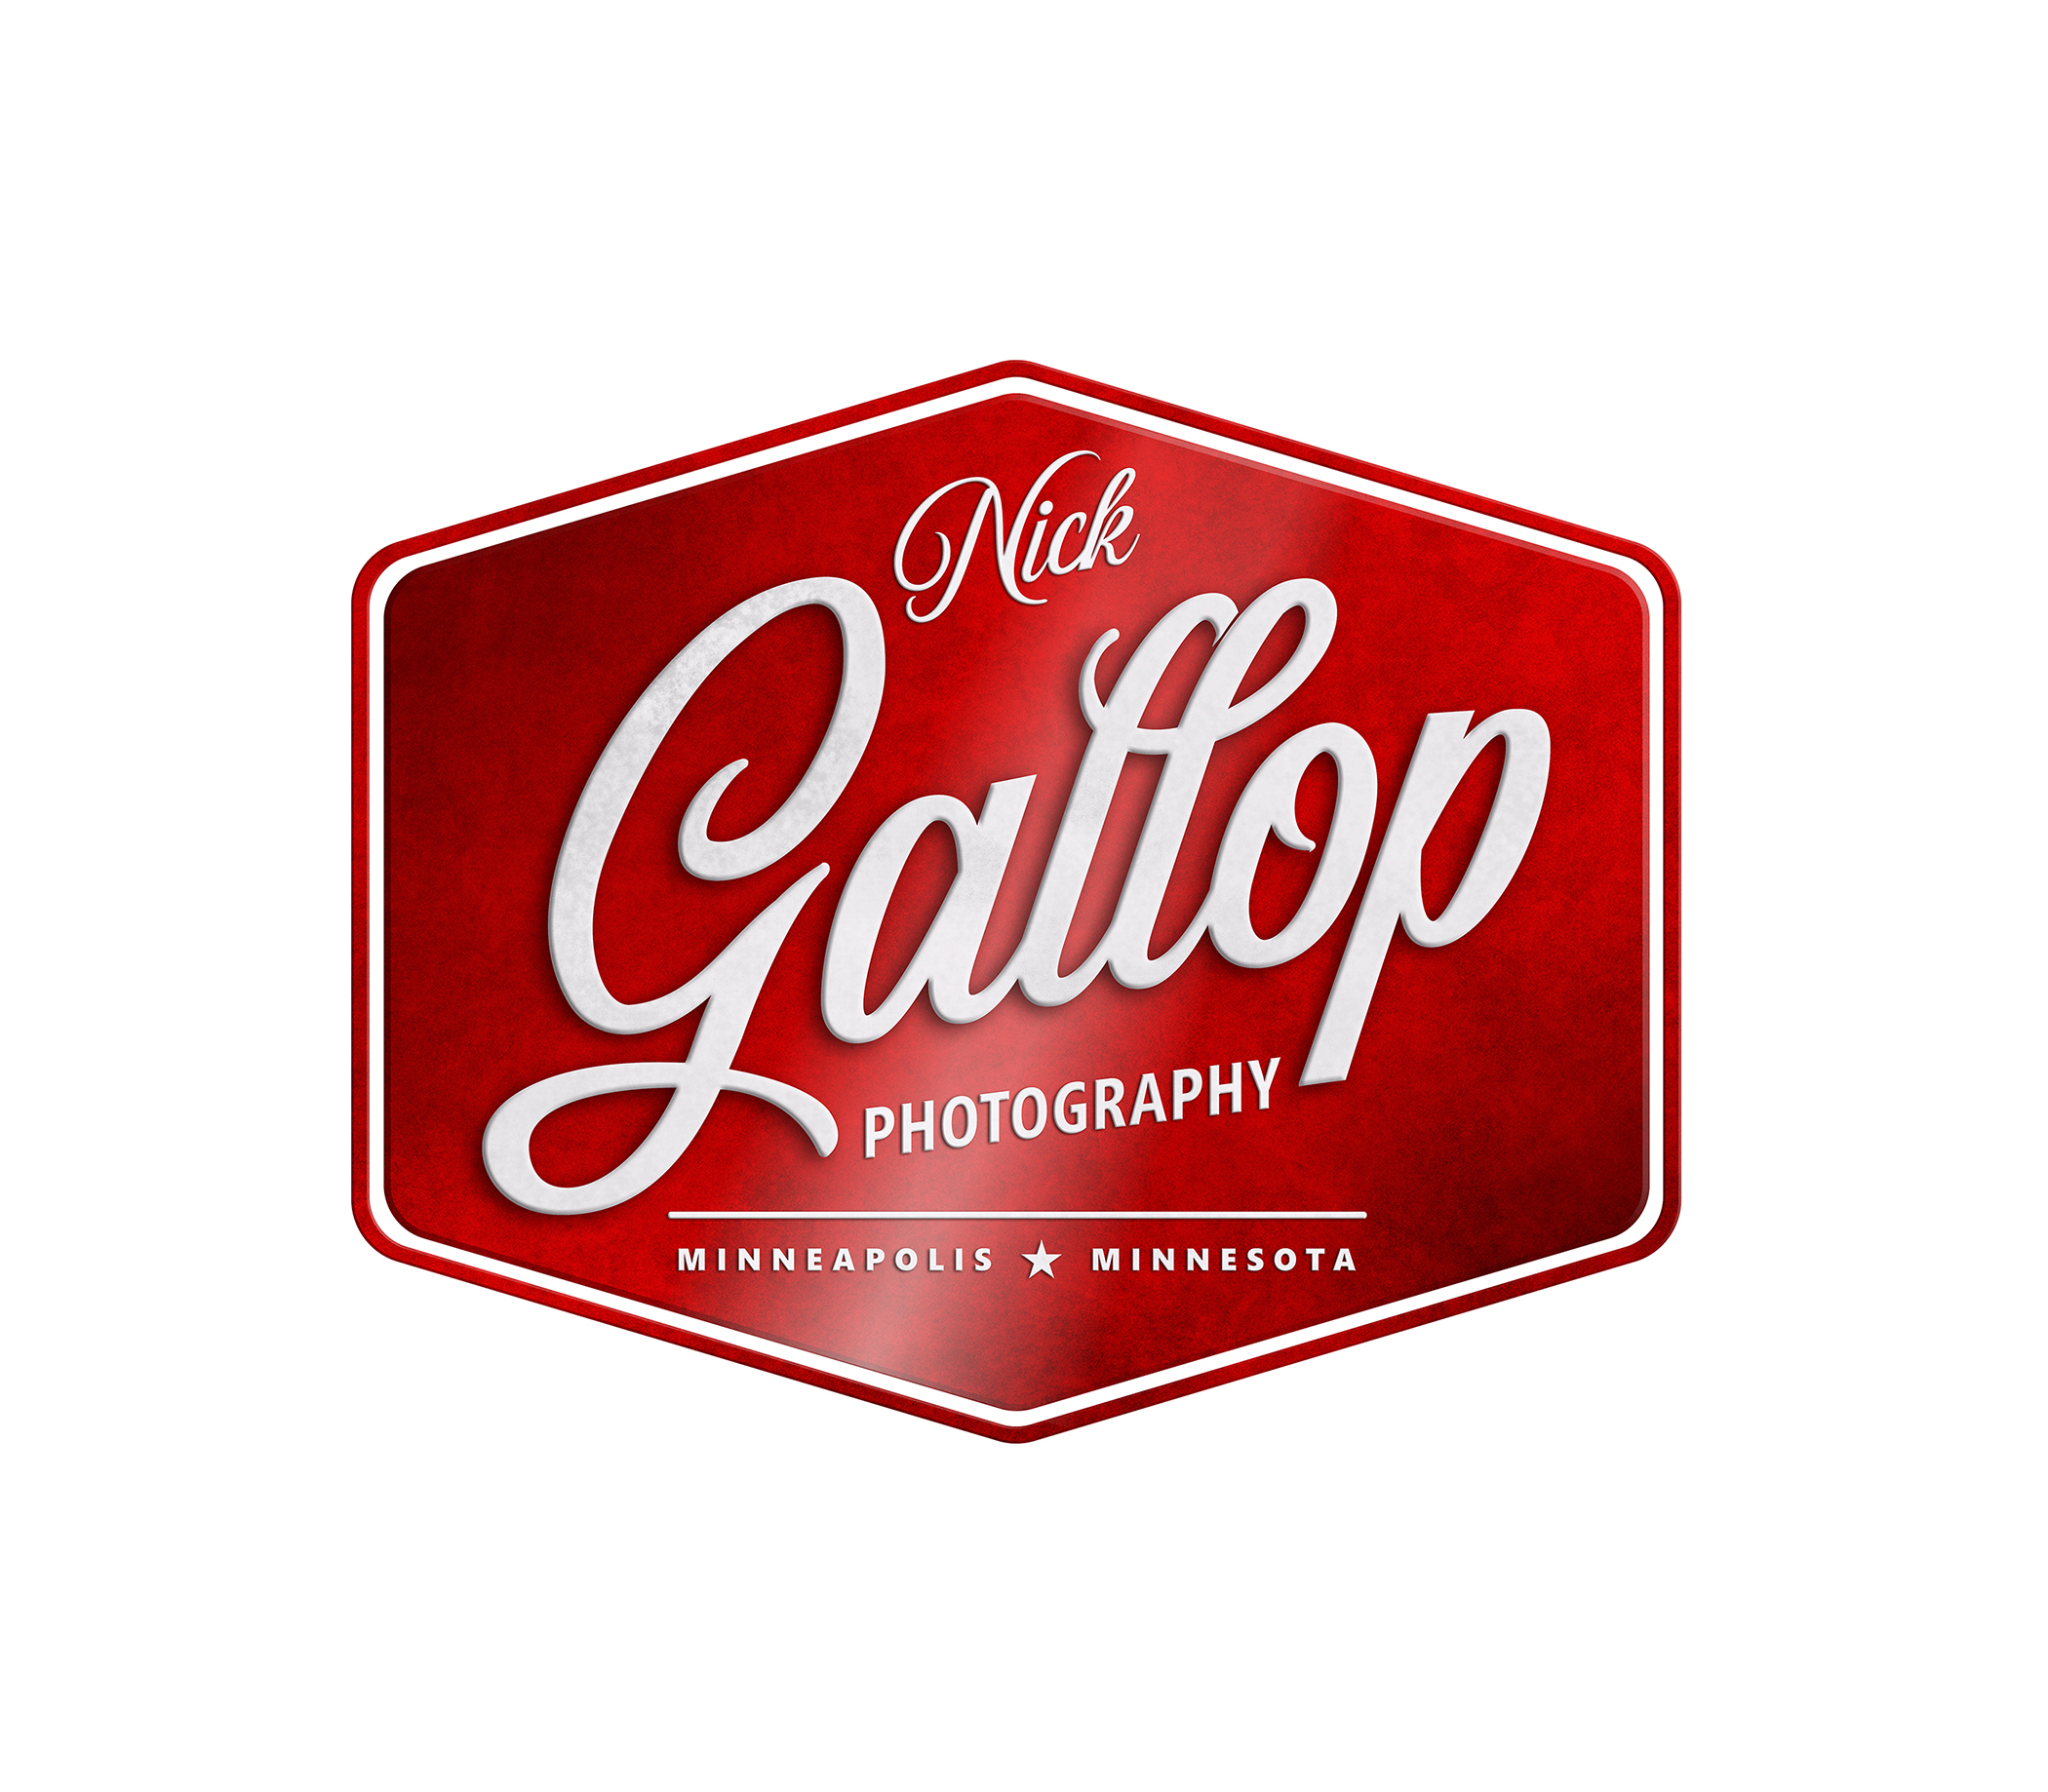 Maverick Design designs Logo for Nick Gallop Photography in Minneapolis, Minnesota